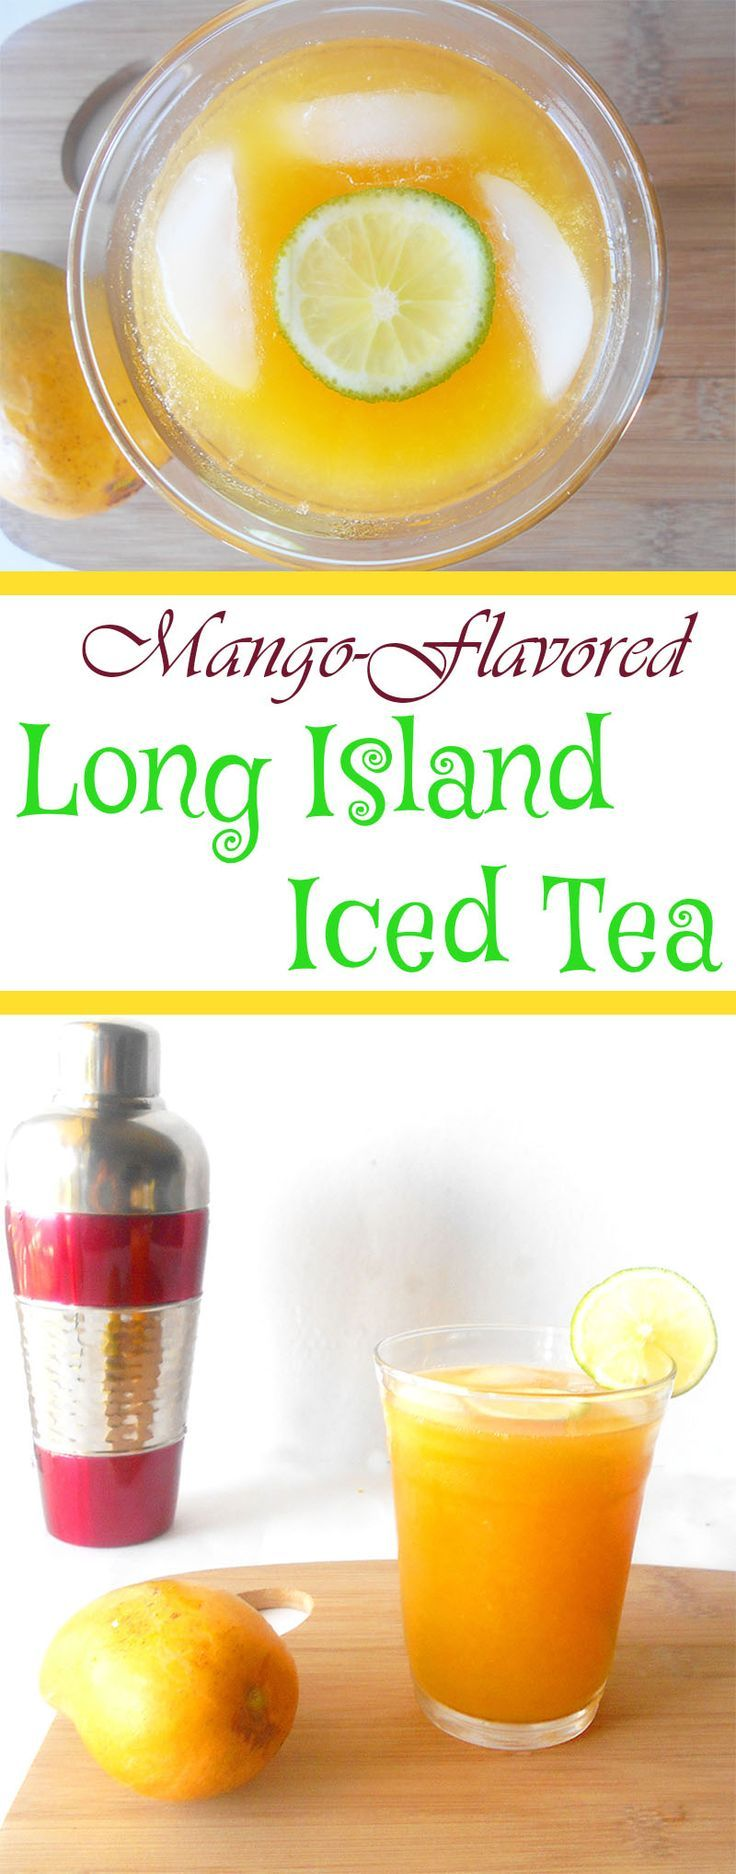 This is a regular long island iced tea with a little Mango liqueur added to it.  This cocktail recipe is a perfect summer tequila drink. It is a quick drink recipe because it takes only 15 min to make